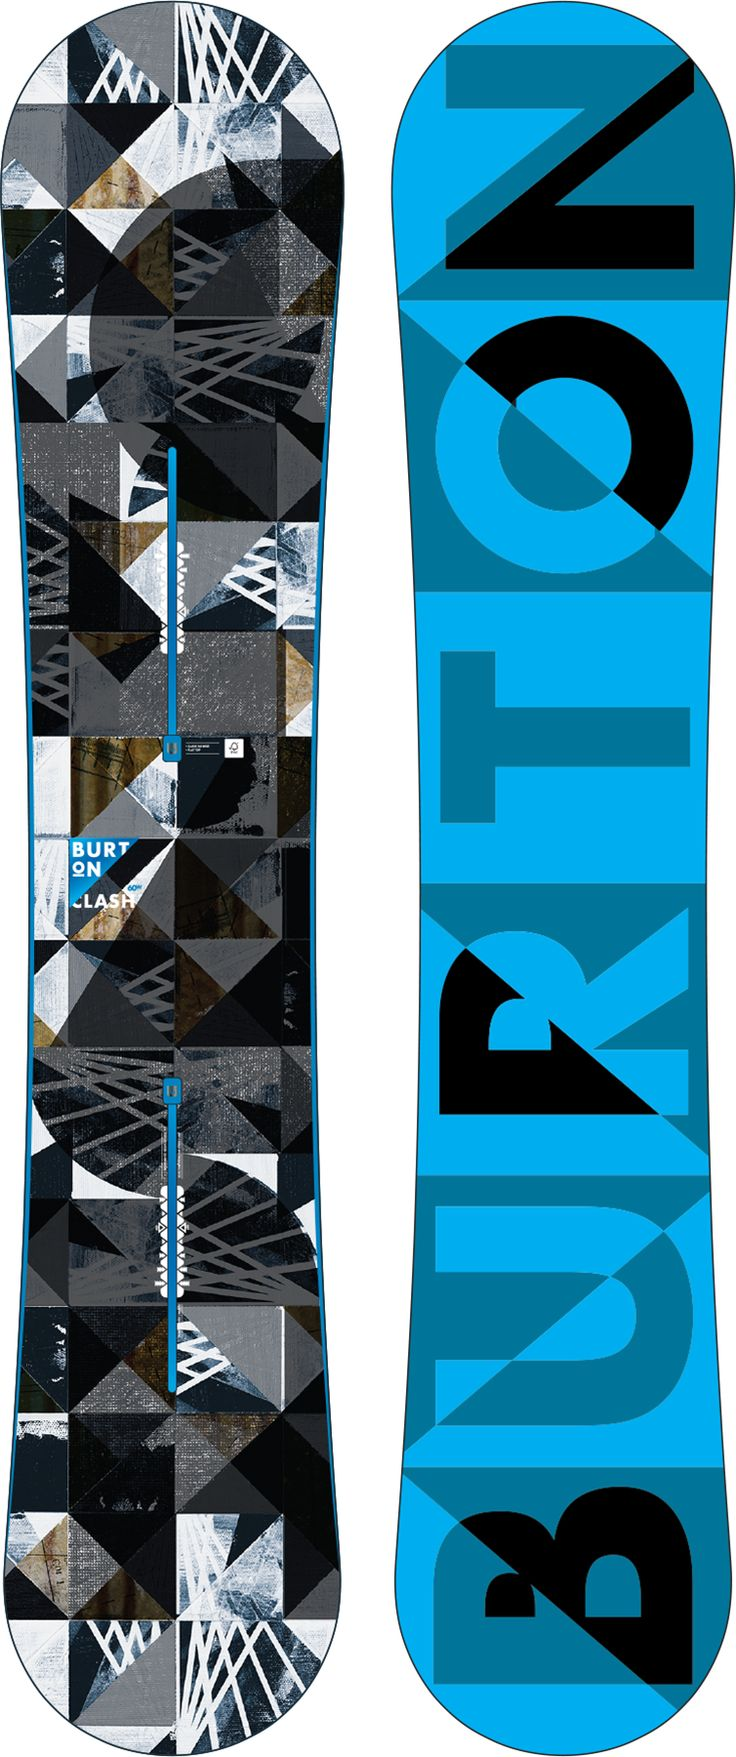 BURTON CLASH BOARD  Blast through the basics and upgrade your abilities with catch-free control and stability that makes easy work of all terrain.